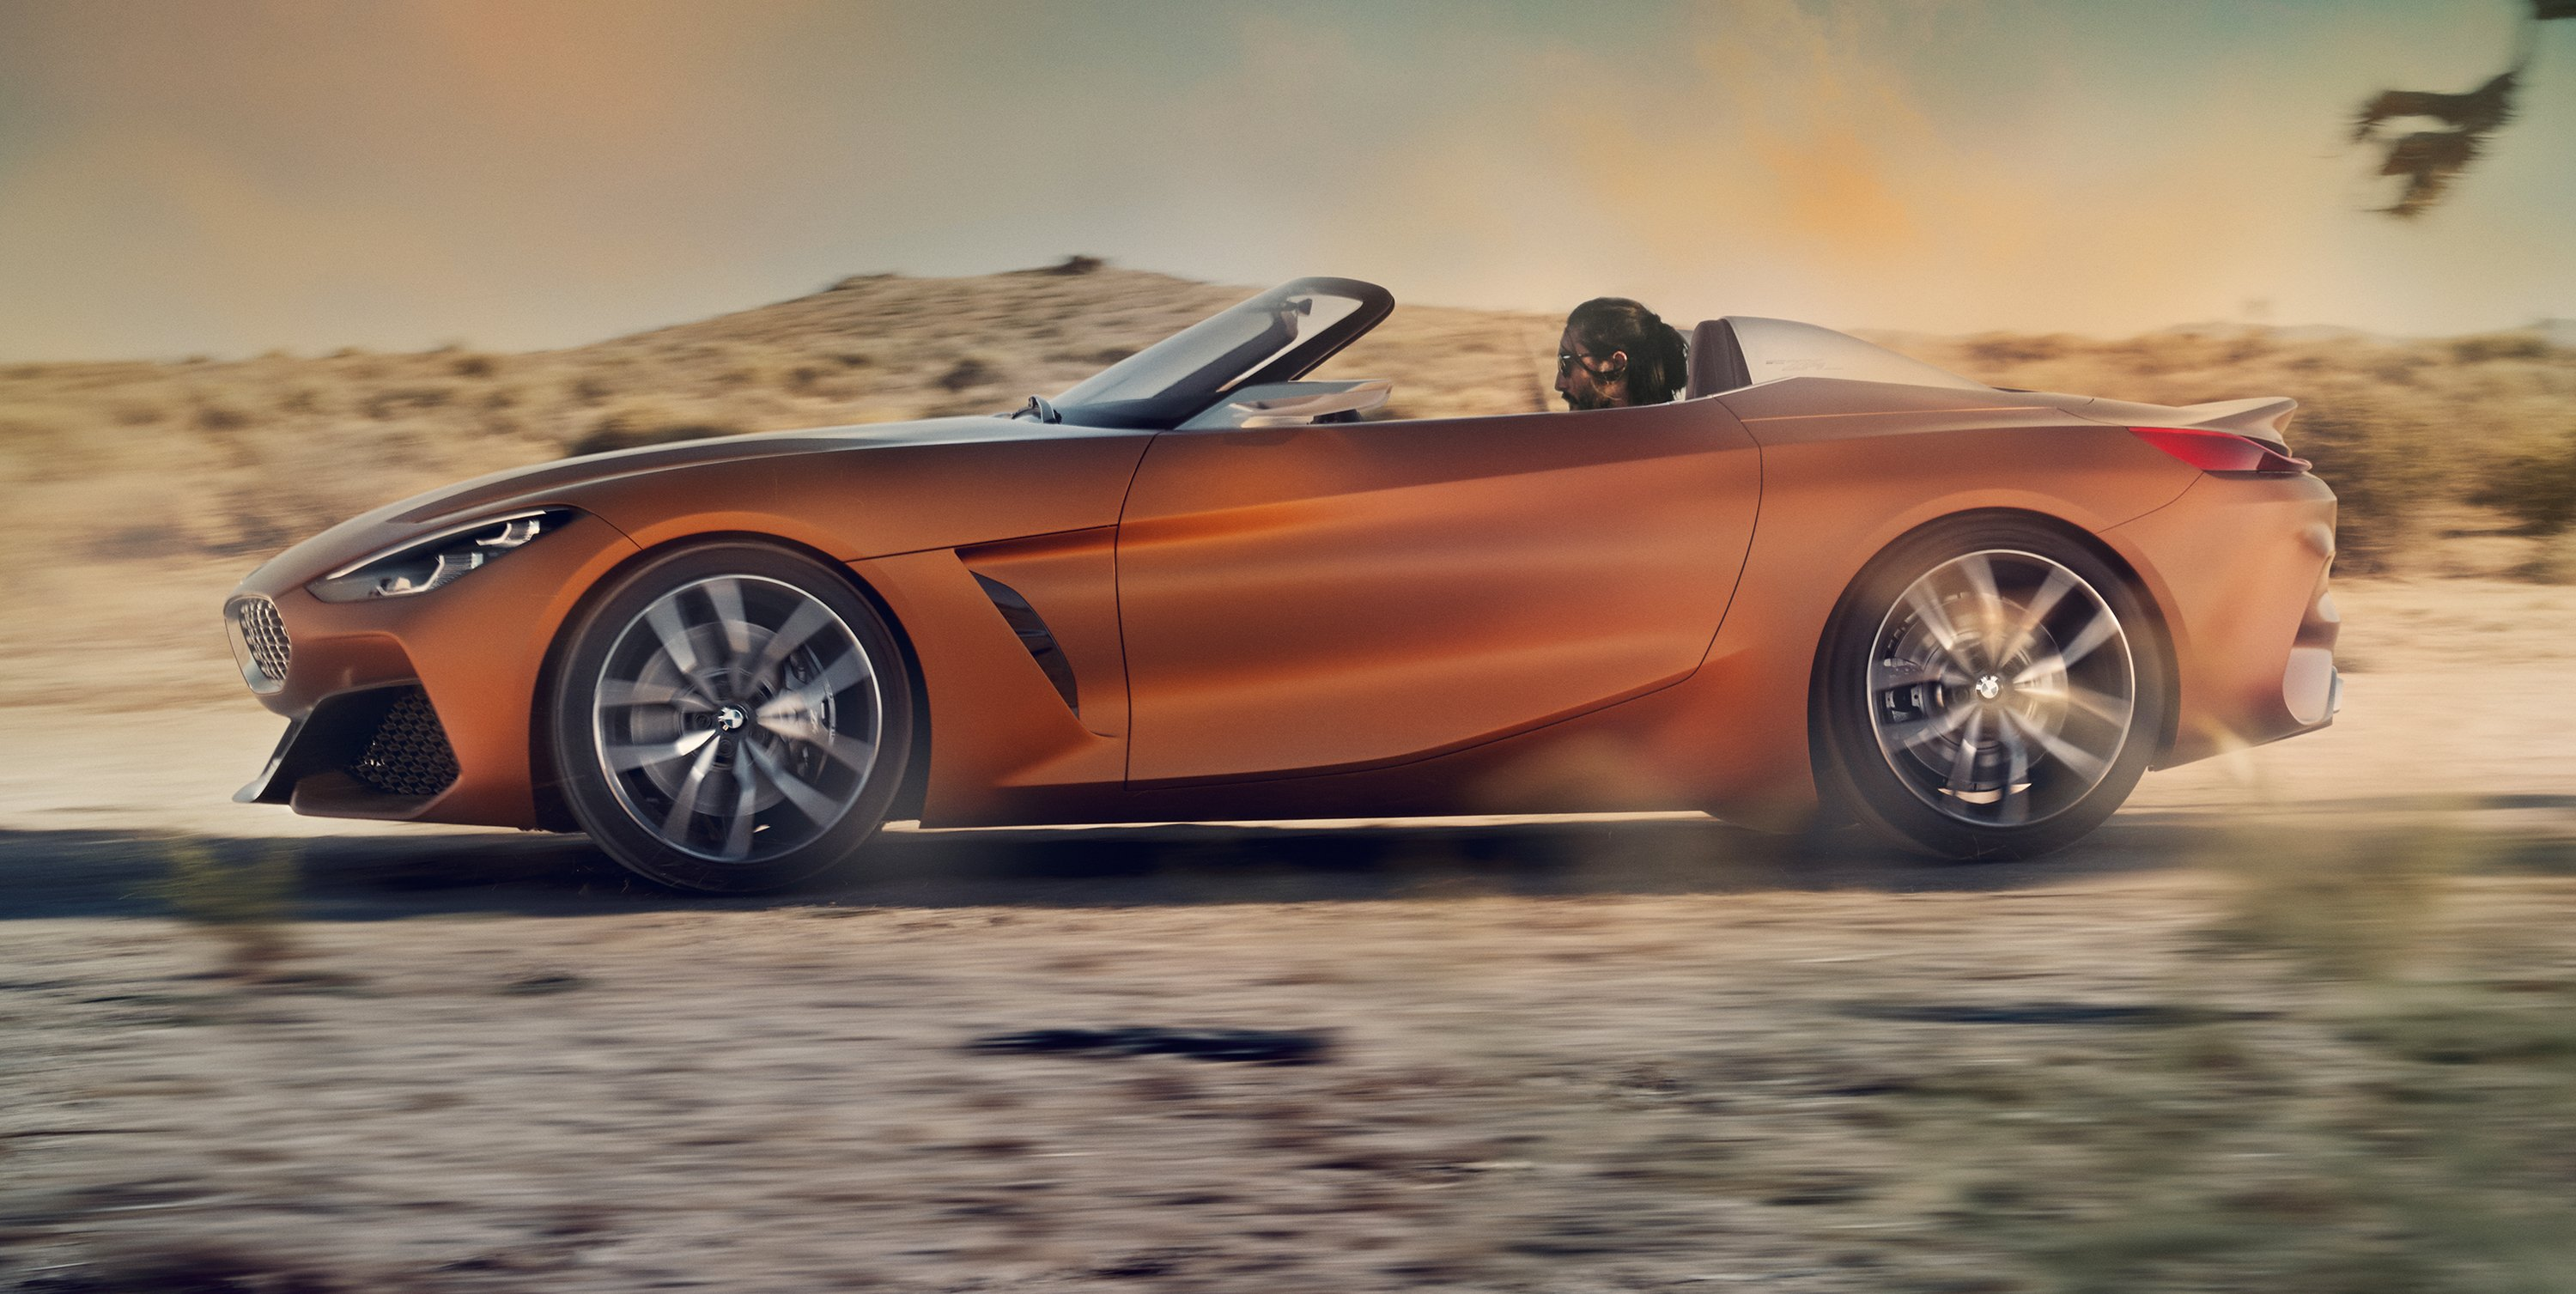 2018 Bmw Z4 New Generation Roadster Previewed For Pebble Beach Show Photos Caradvice